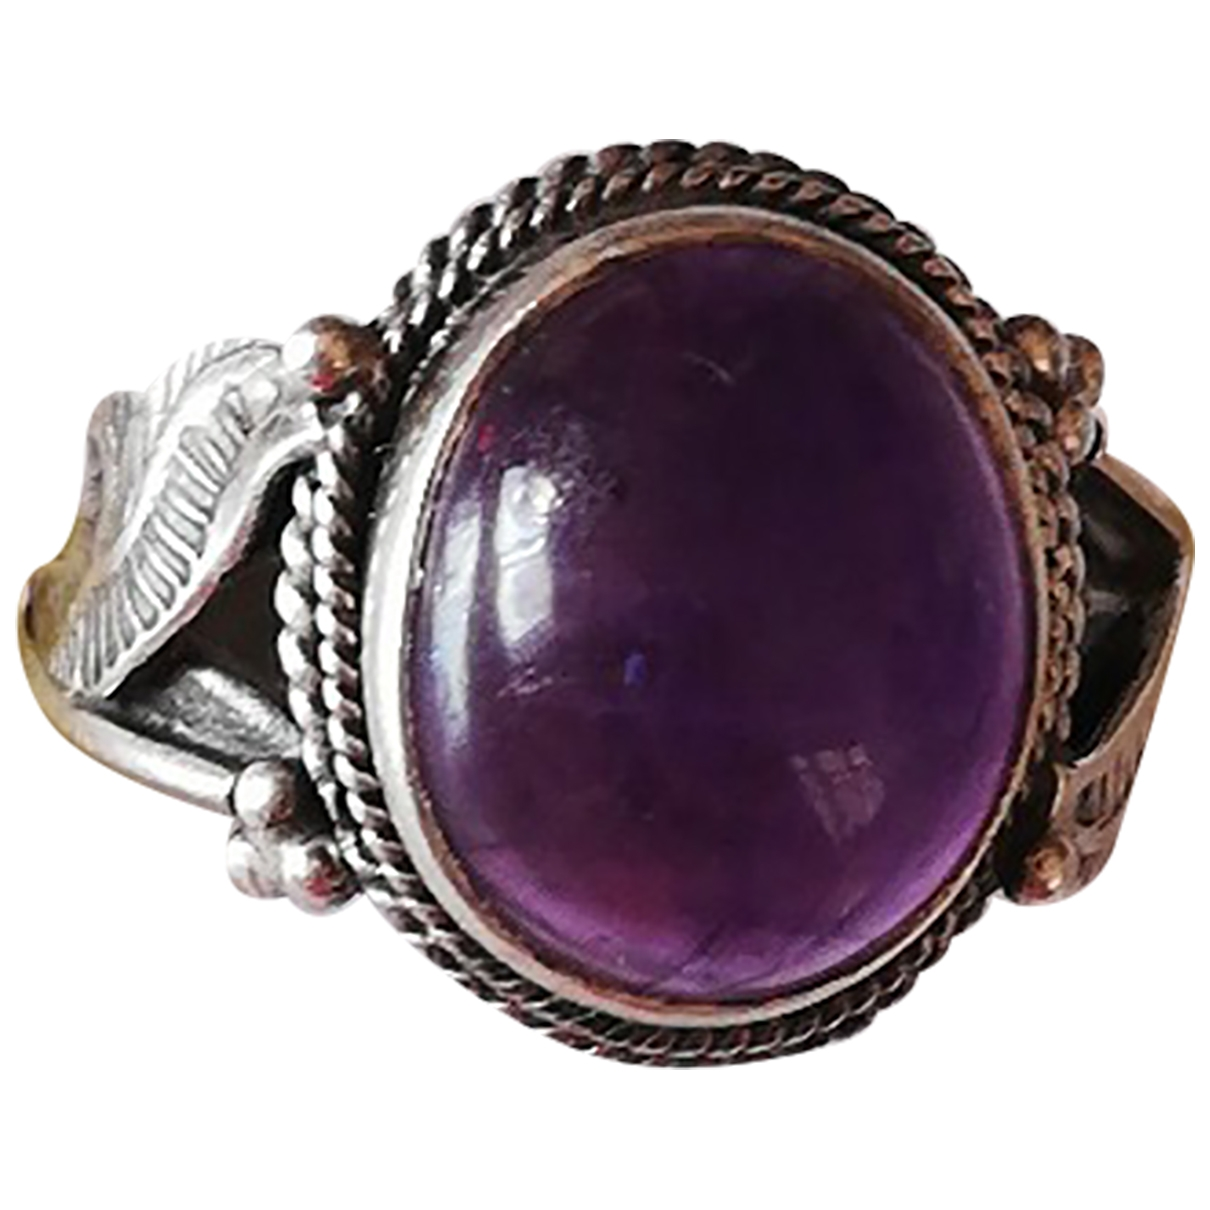 Non Signe / Unsigned Amethyste Ring in  Lila Silber